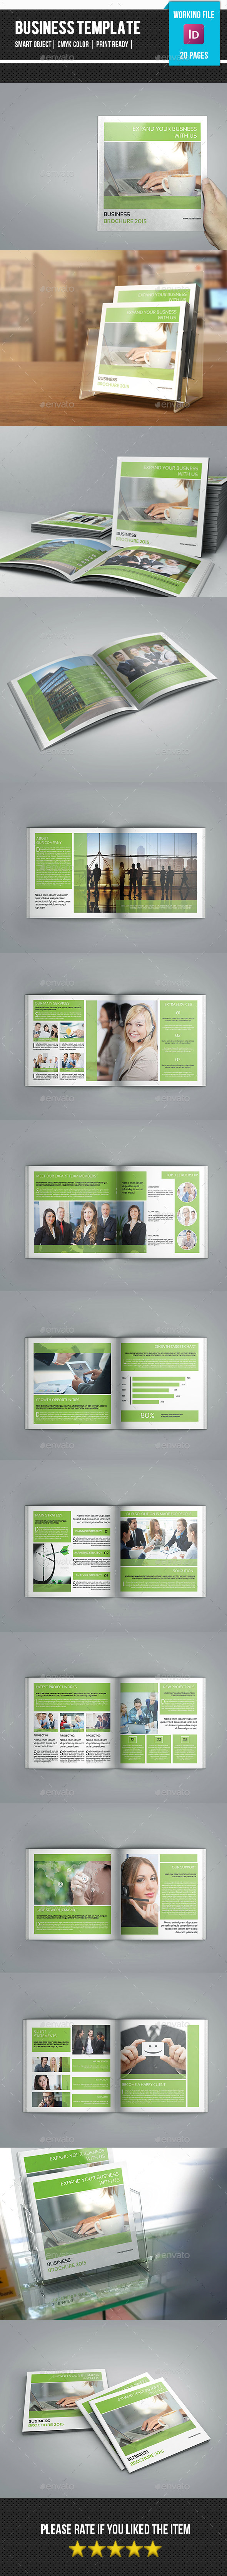 GraphicRiver Corporate Square Brochure-V19 11275783